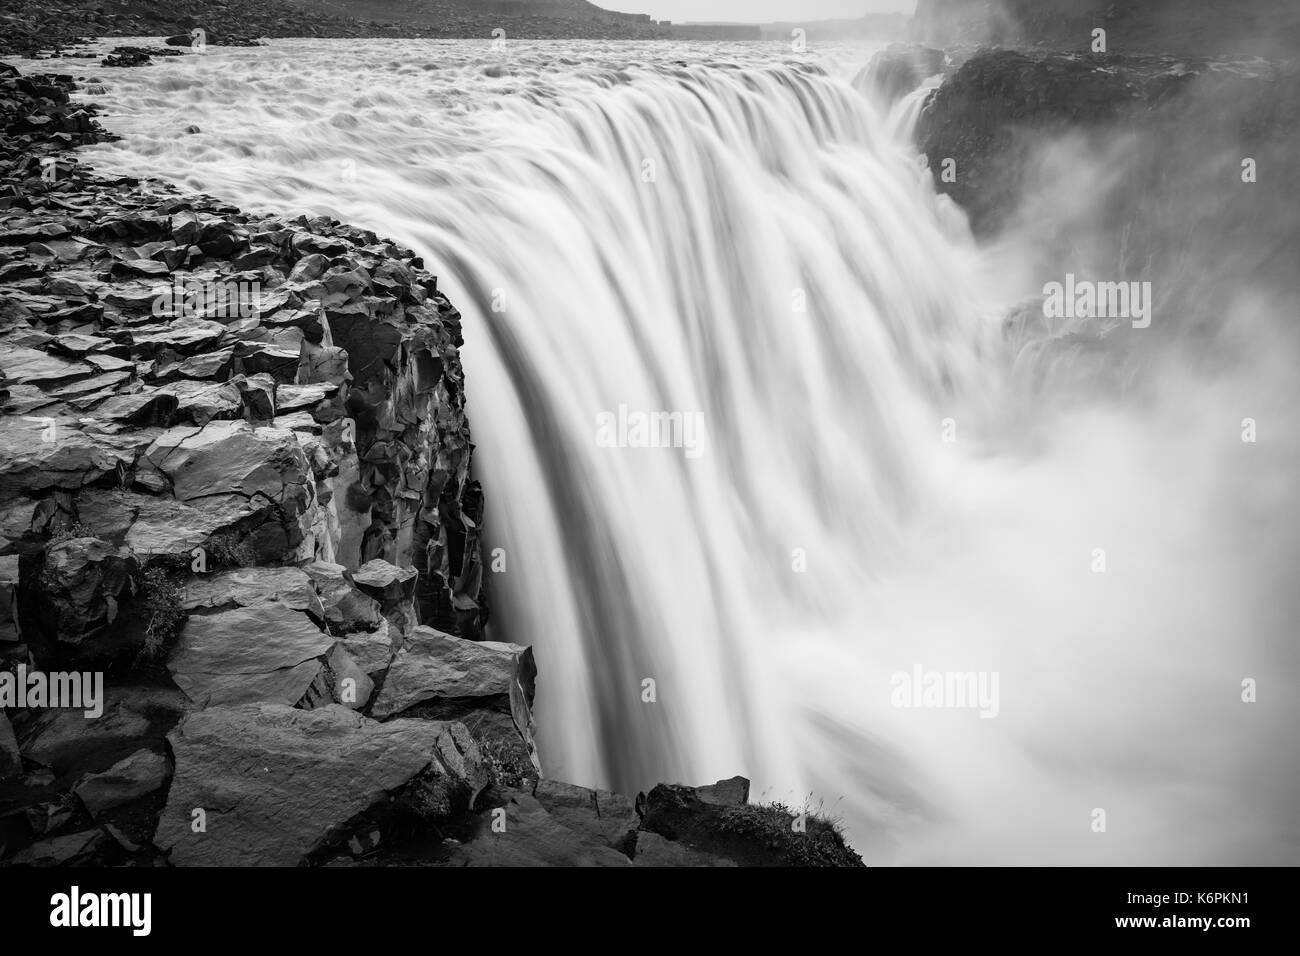 Dettifoss is a waterfall in Vatnajökull National Park in Northeast Iceland, and is reputed to be the most powerful waterfall in Europe. The water come - Stock Image